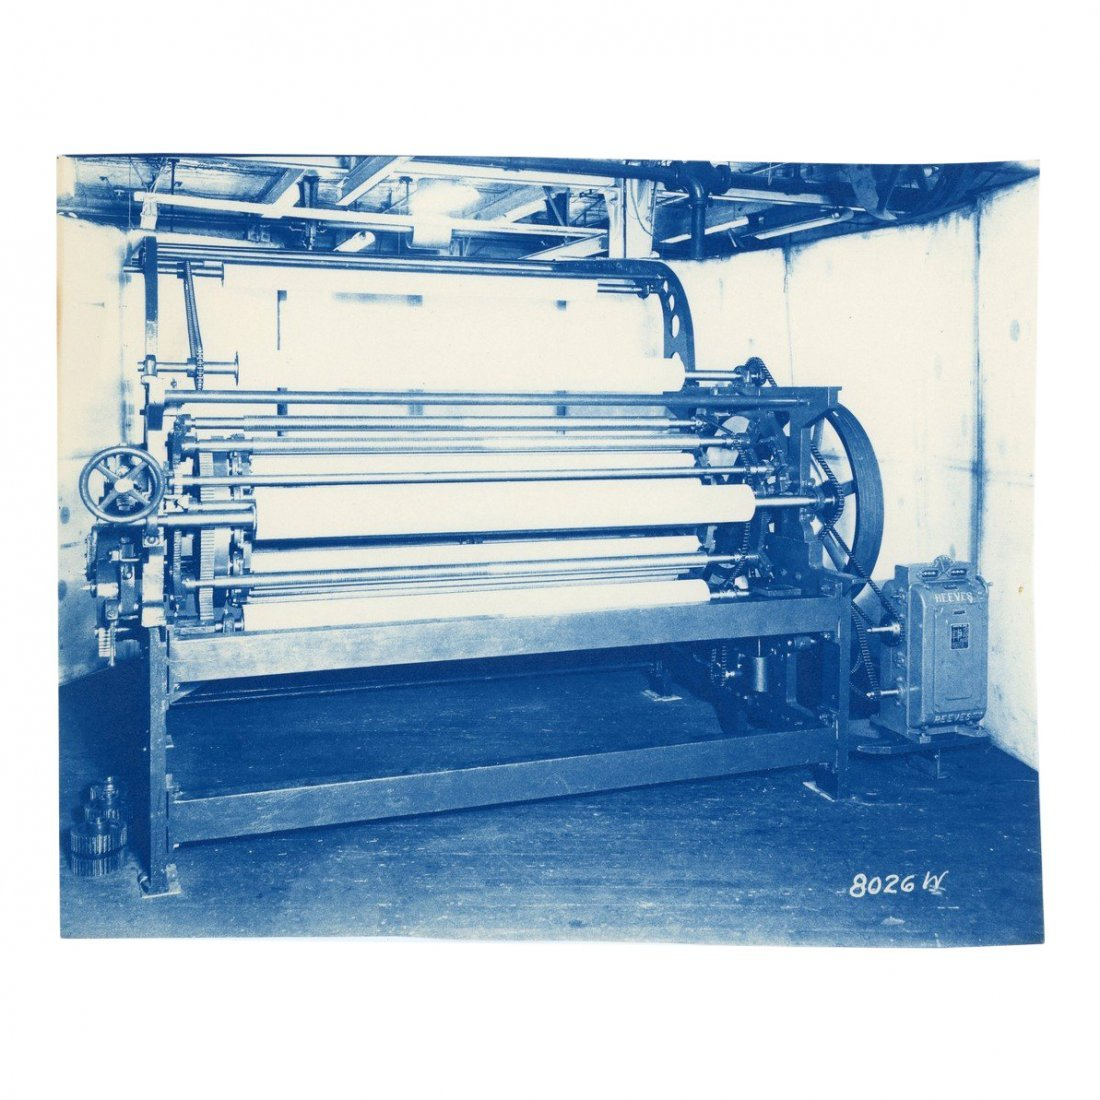 Lot of 5 Cyanotype Photos of Textile Machinery